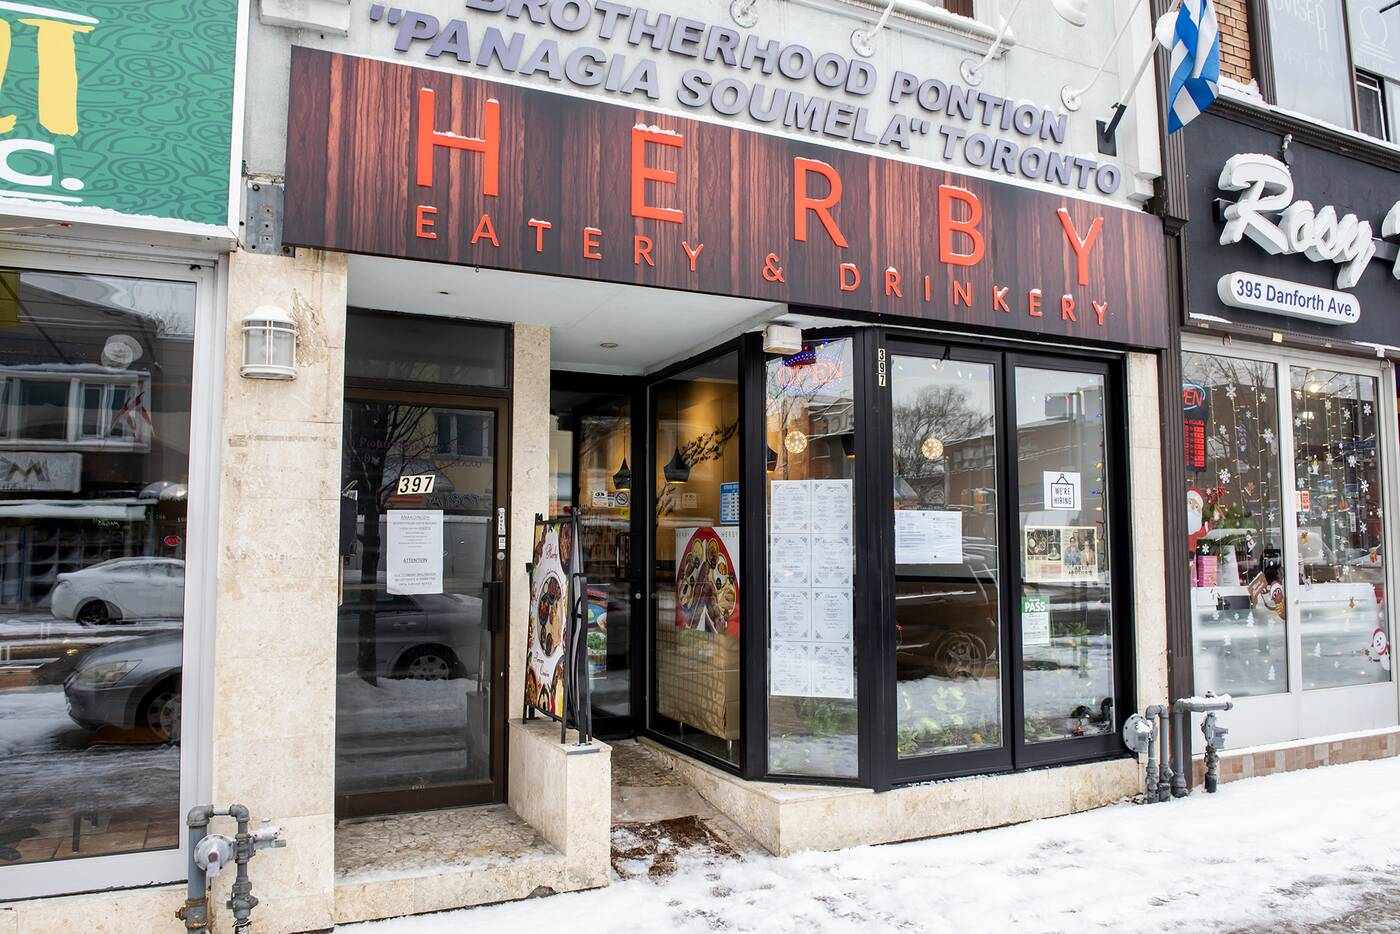 herby toronto